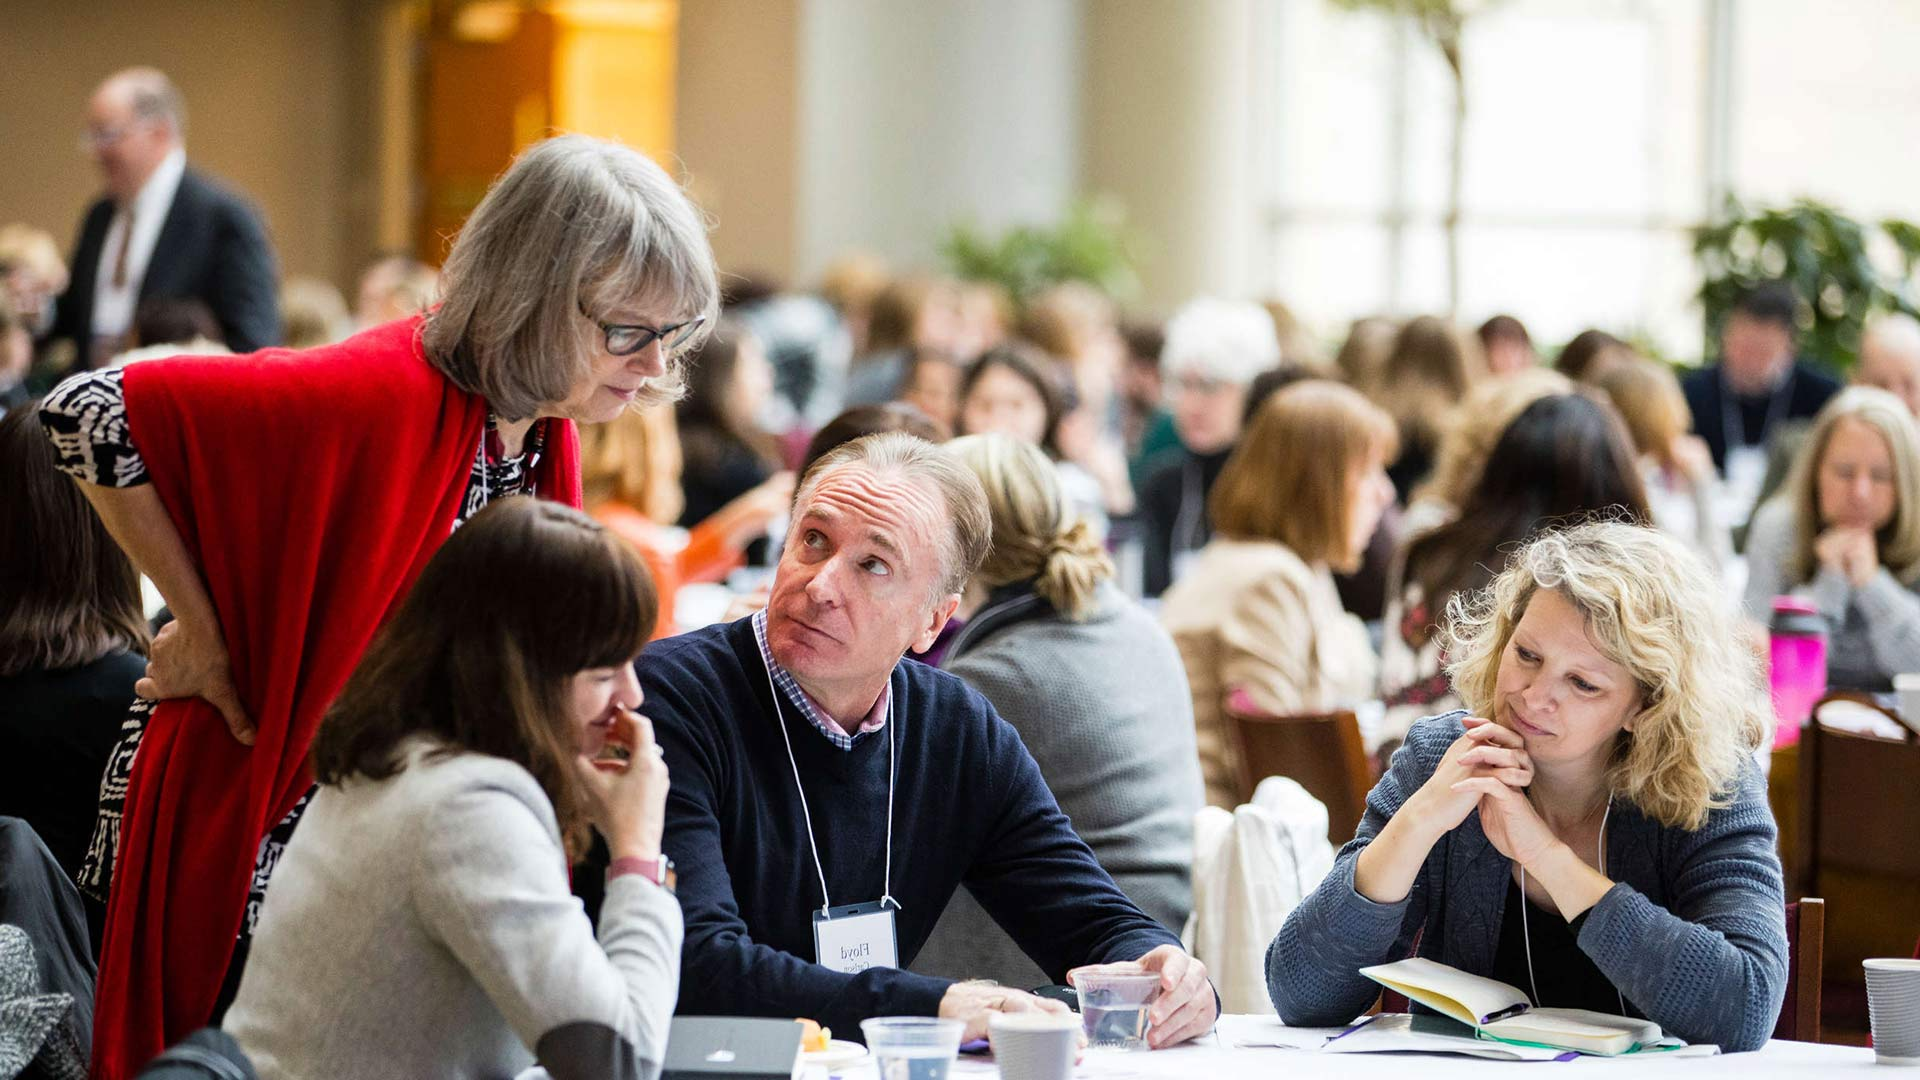 Attendees work on a group exercise during the Executive Coaching in Organizations Conference in the Schulze Grand Atrium in the School of Law building in Minneapolis on January 19, 2018.